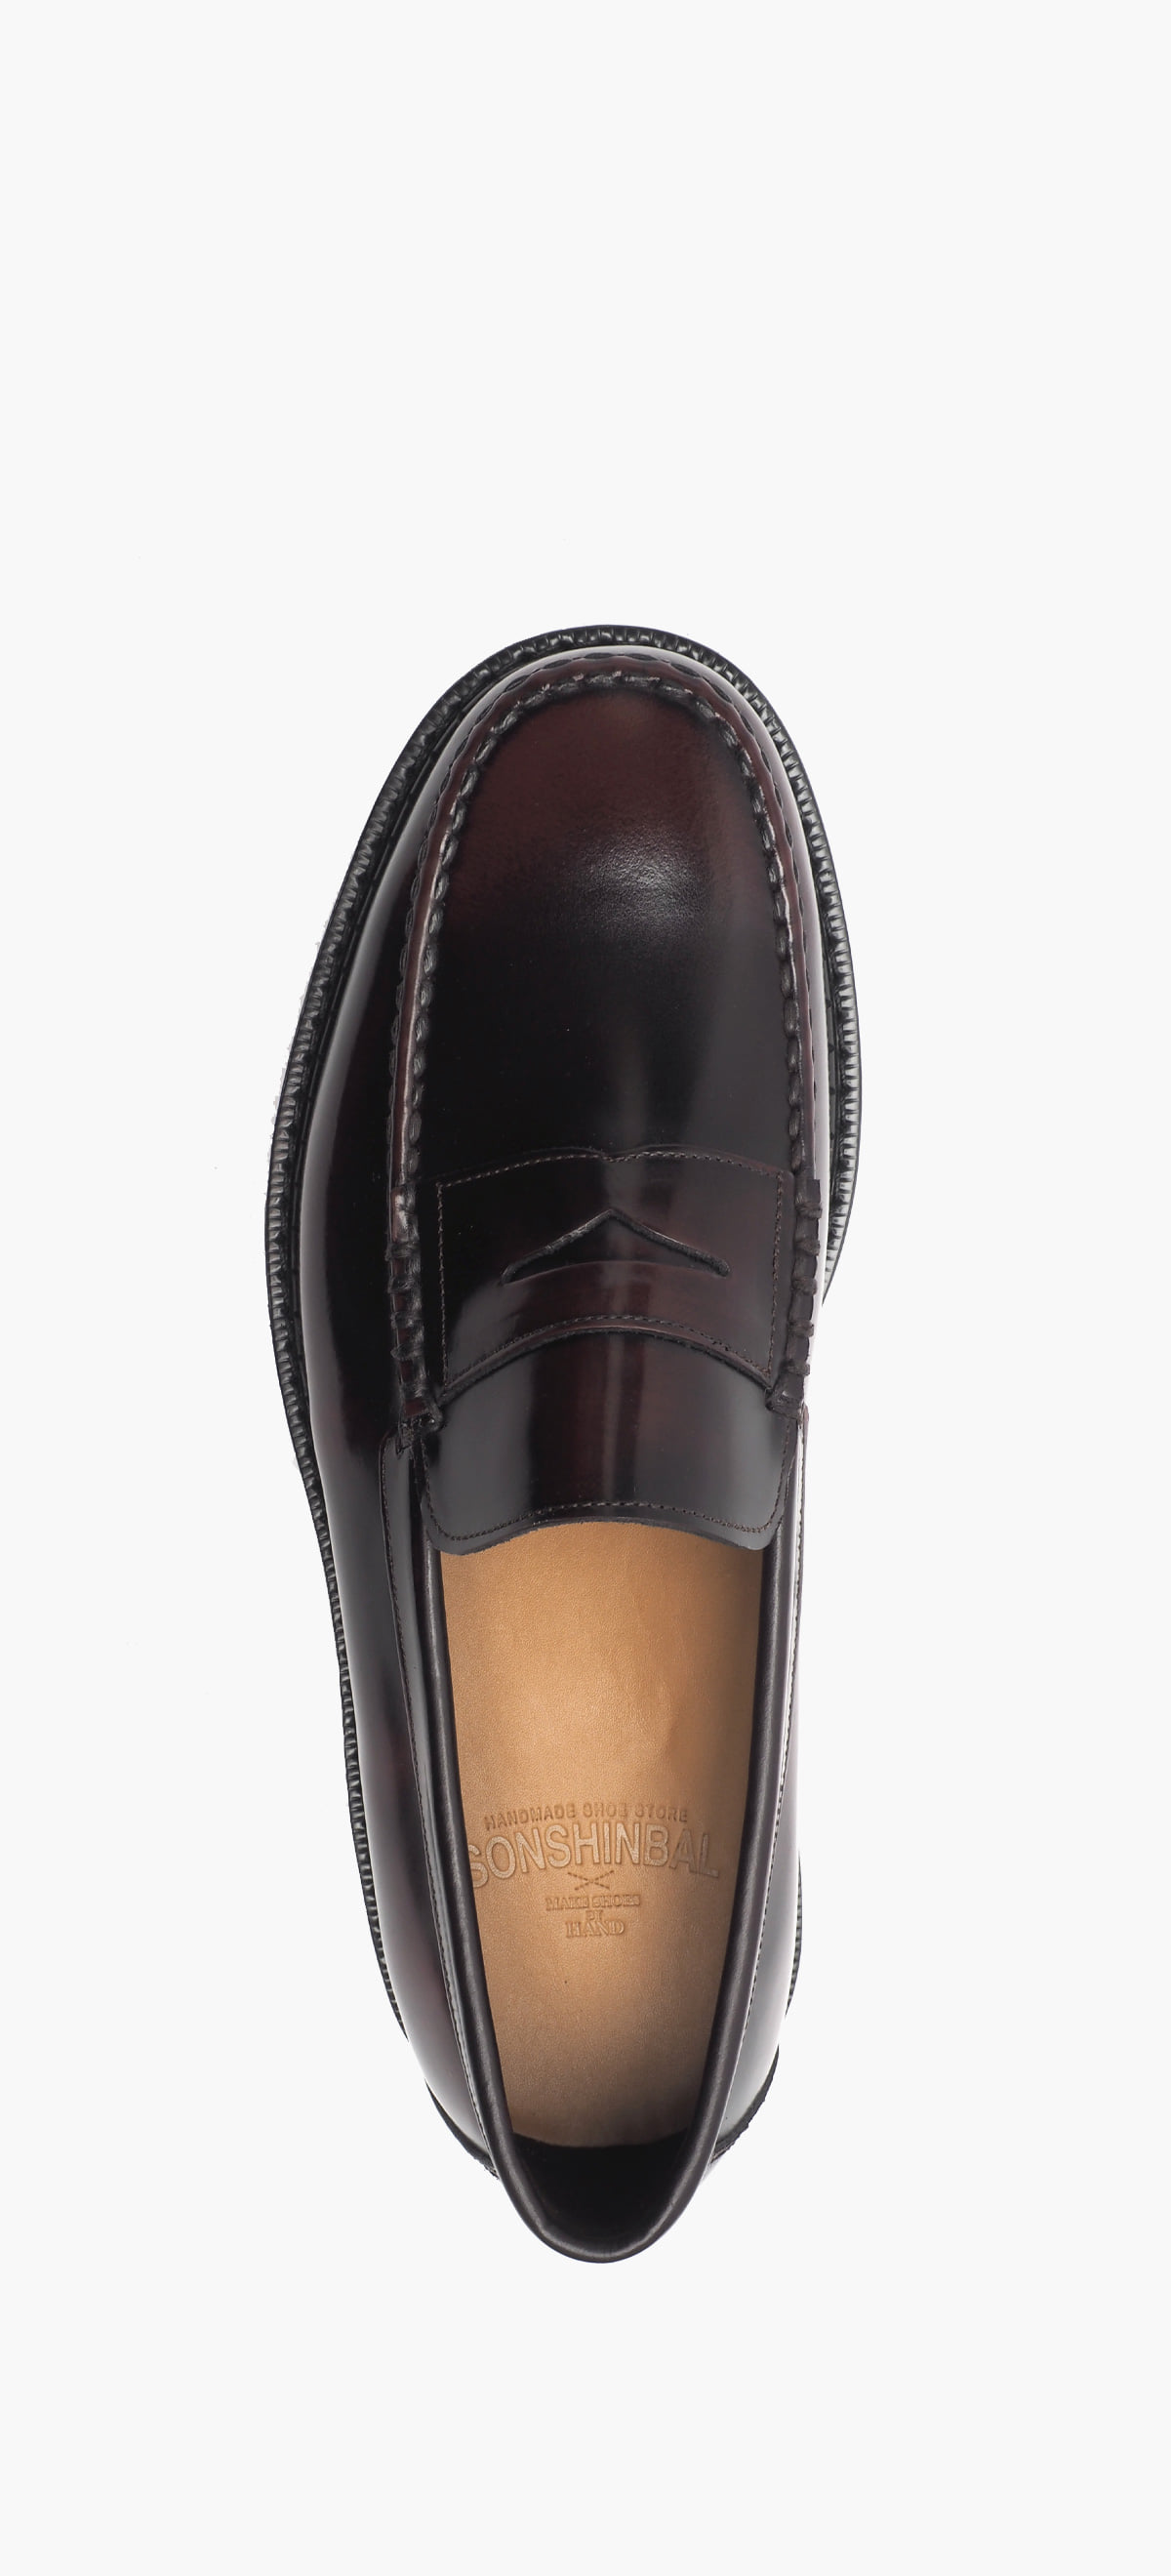 Penny Loafer 8012-43 Wine Two-Tone